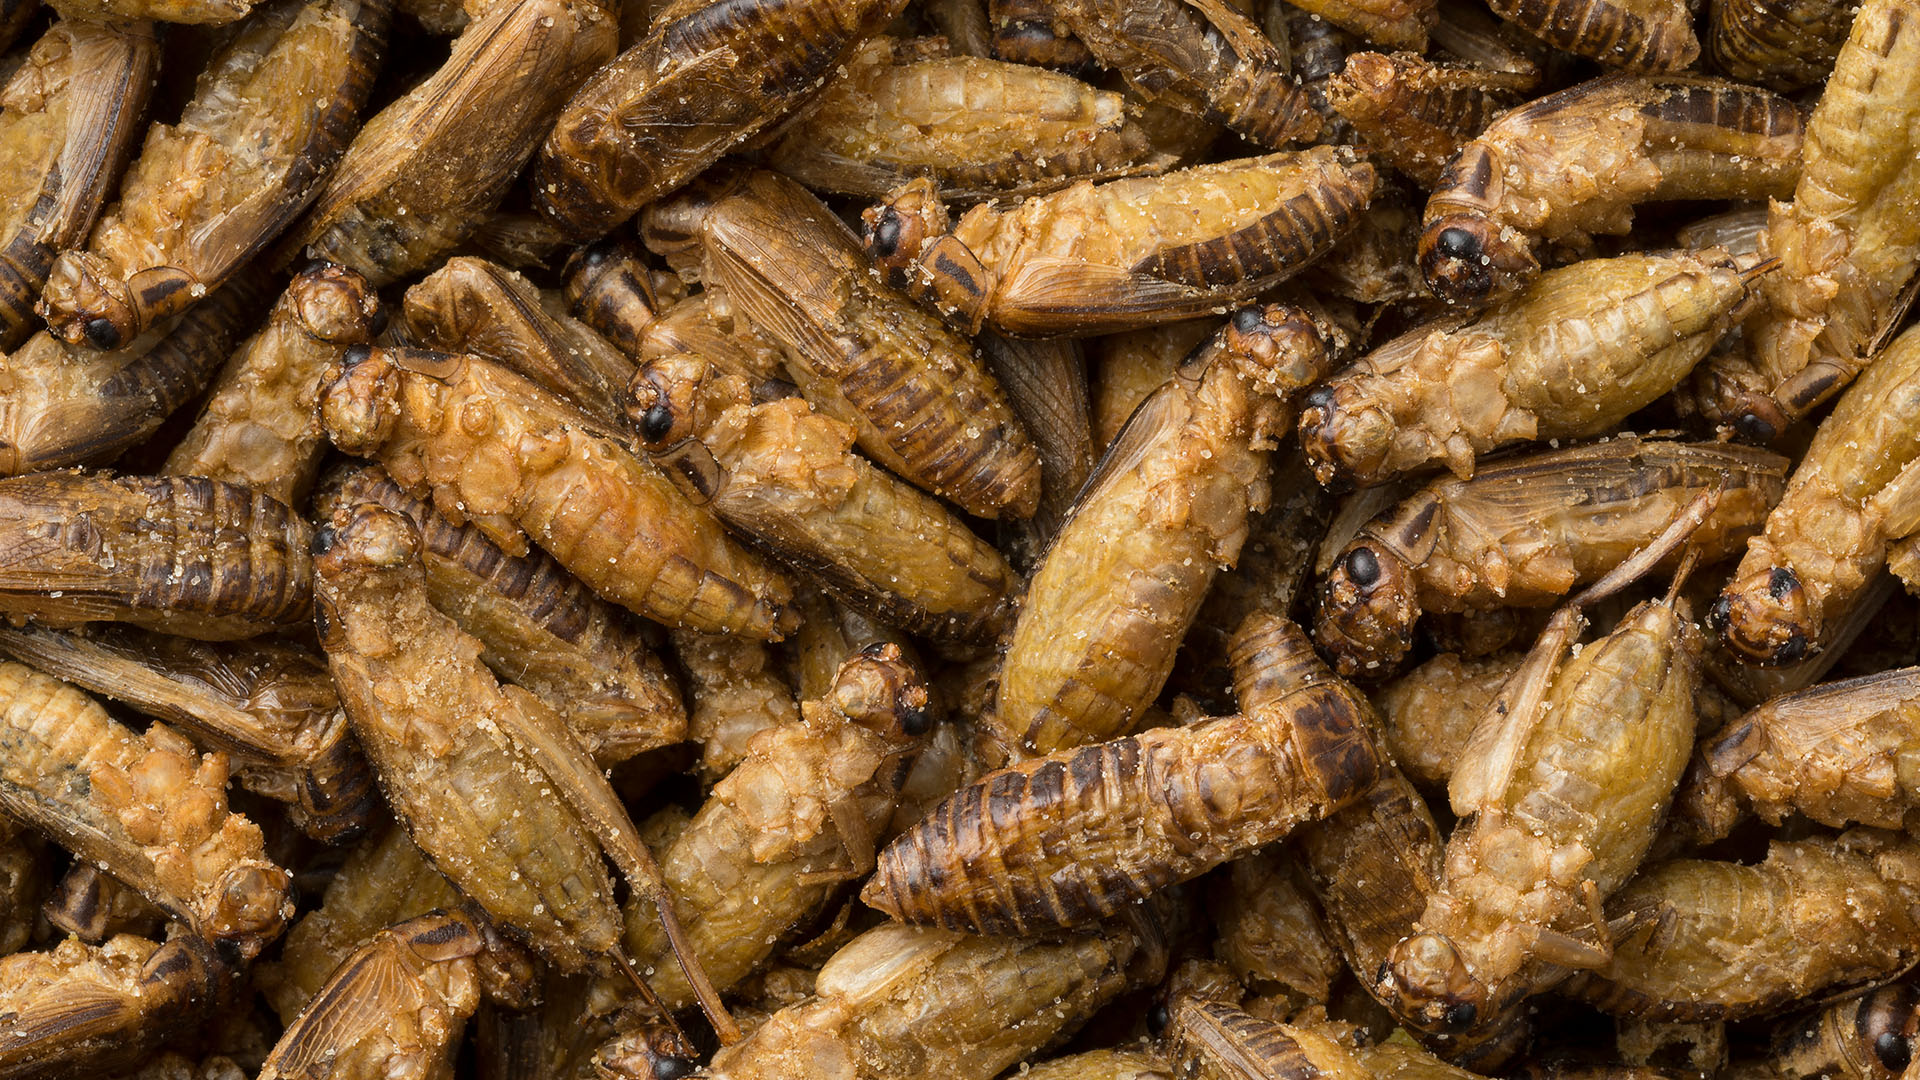 Trudeau gov't seeking specifications for insects as food